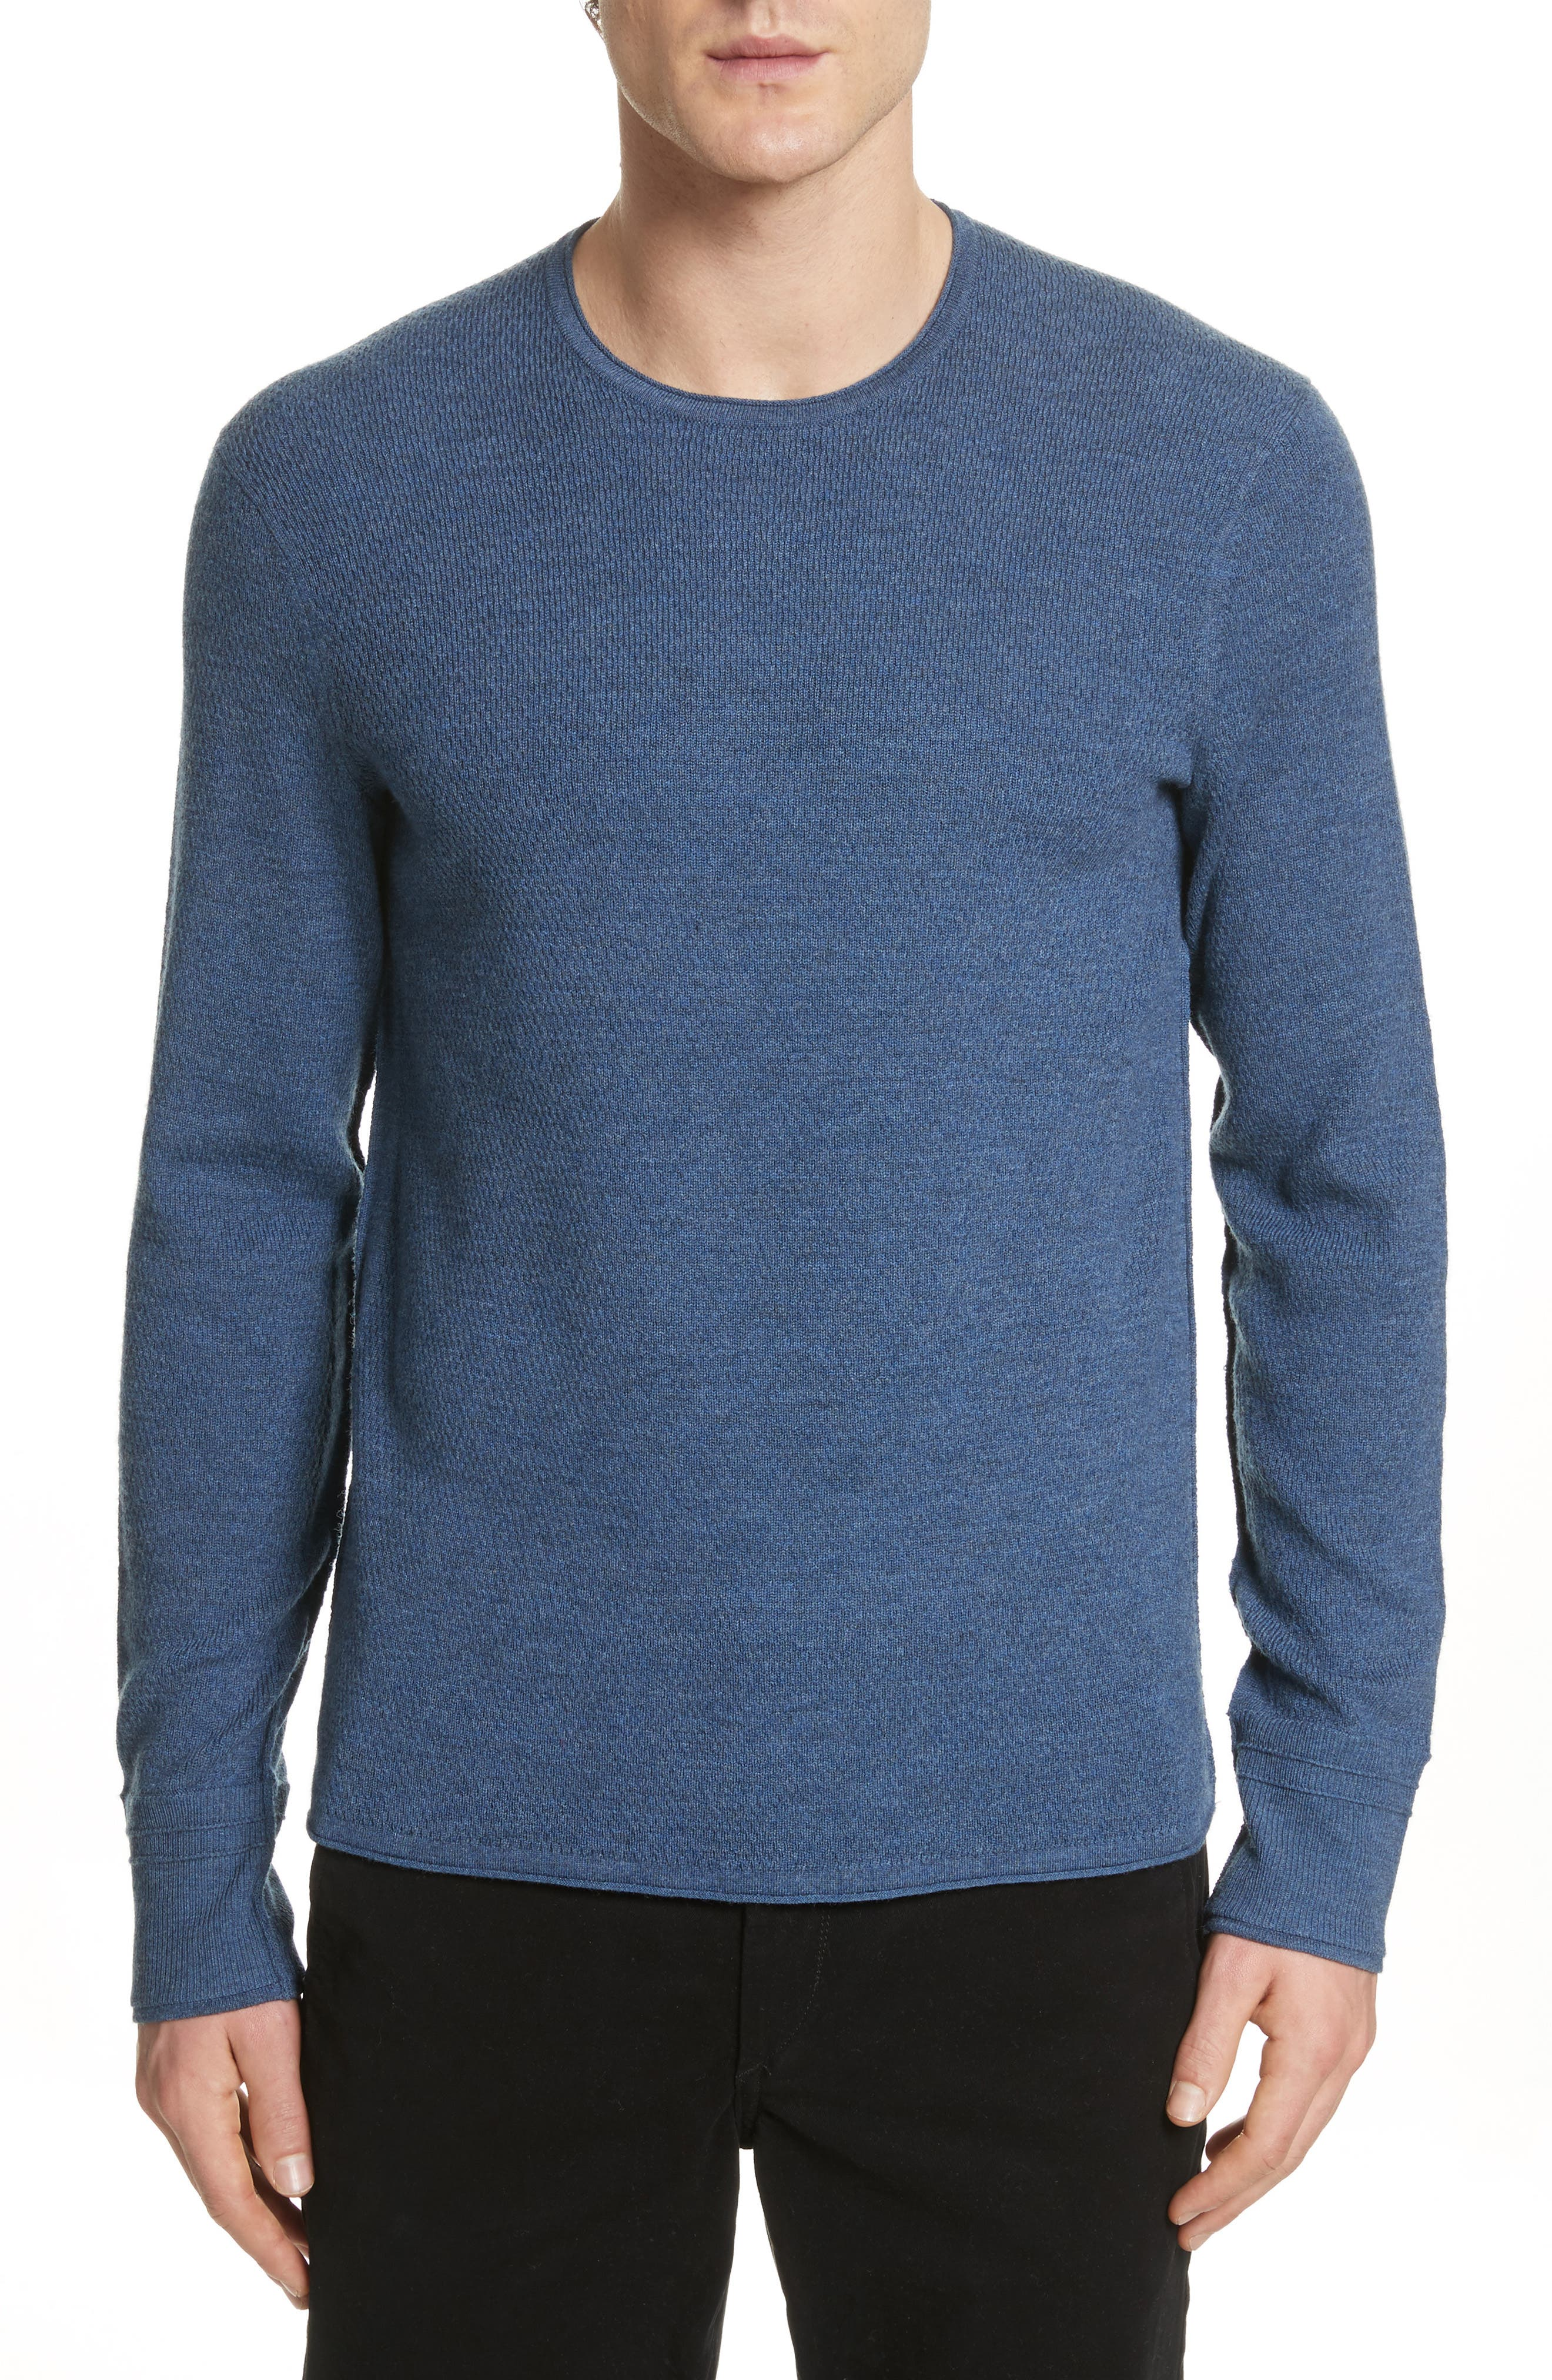 Gregory Merino Wool Blend Crewneck Sweater,                         Main,                         color, Heather Blue